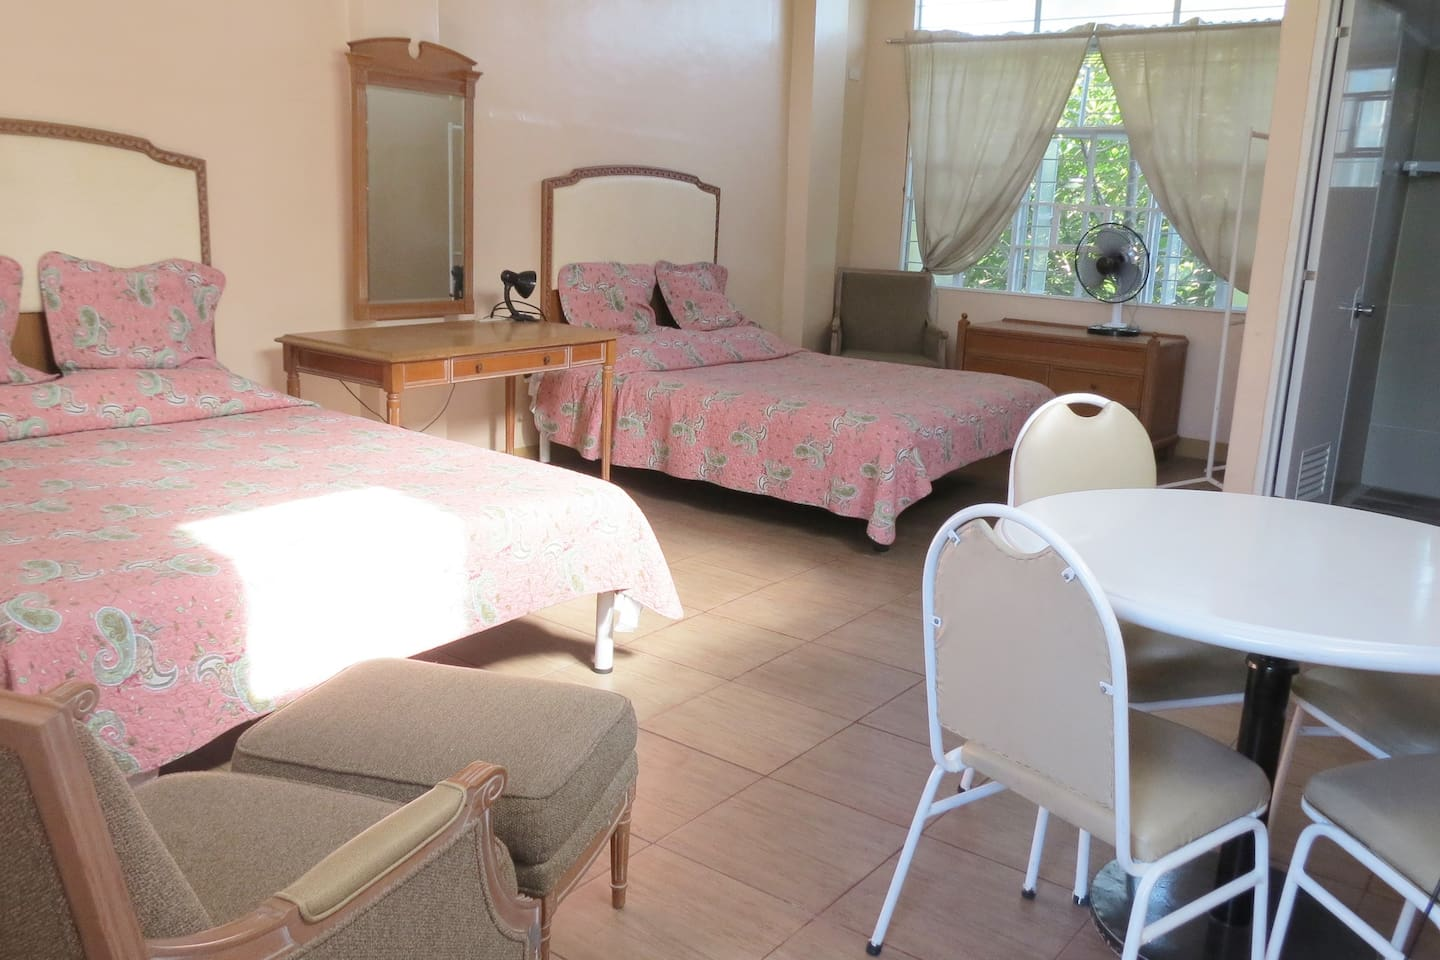 2 Double Beds for 2-4 persons